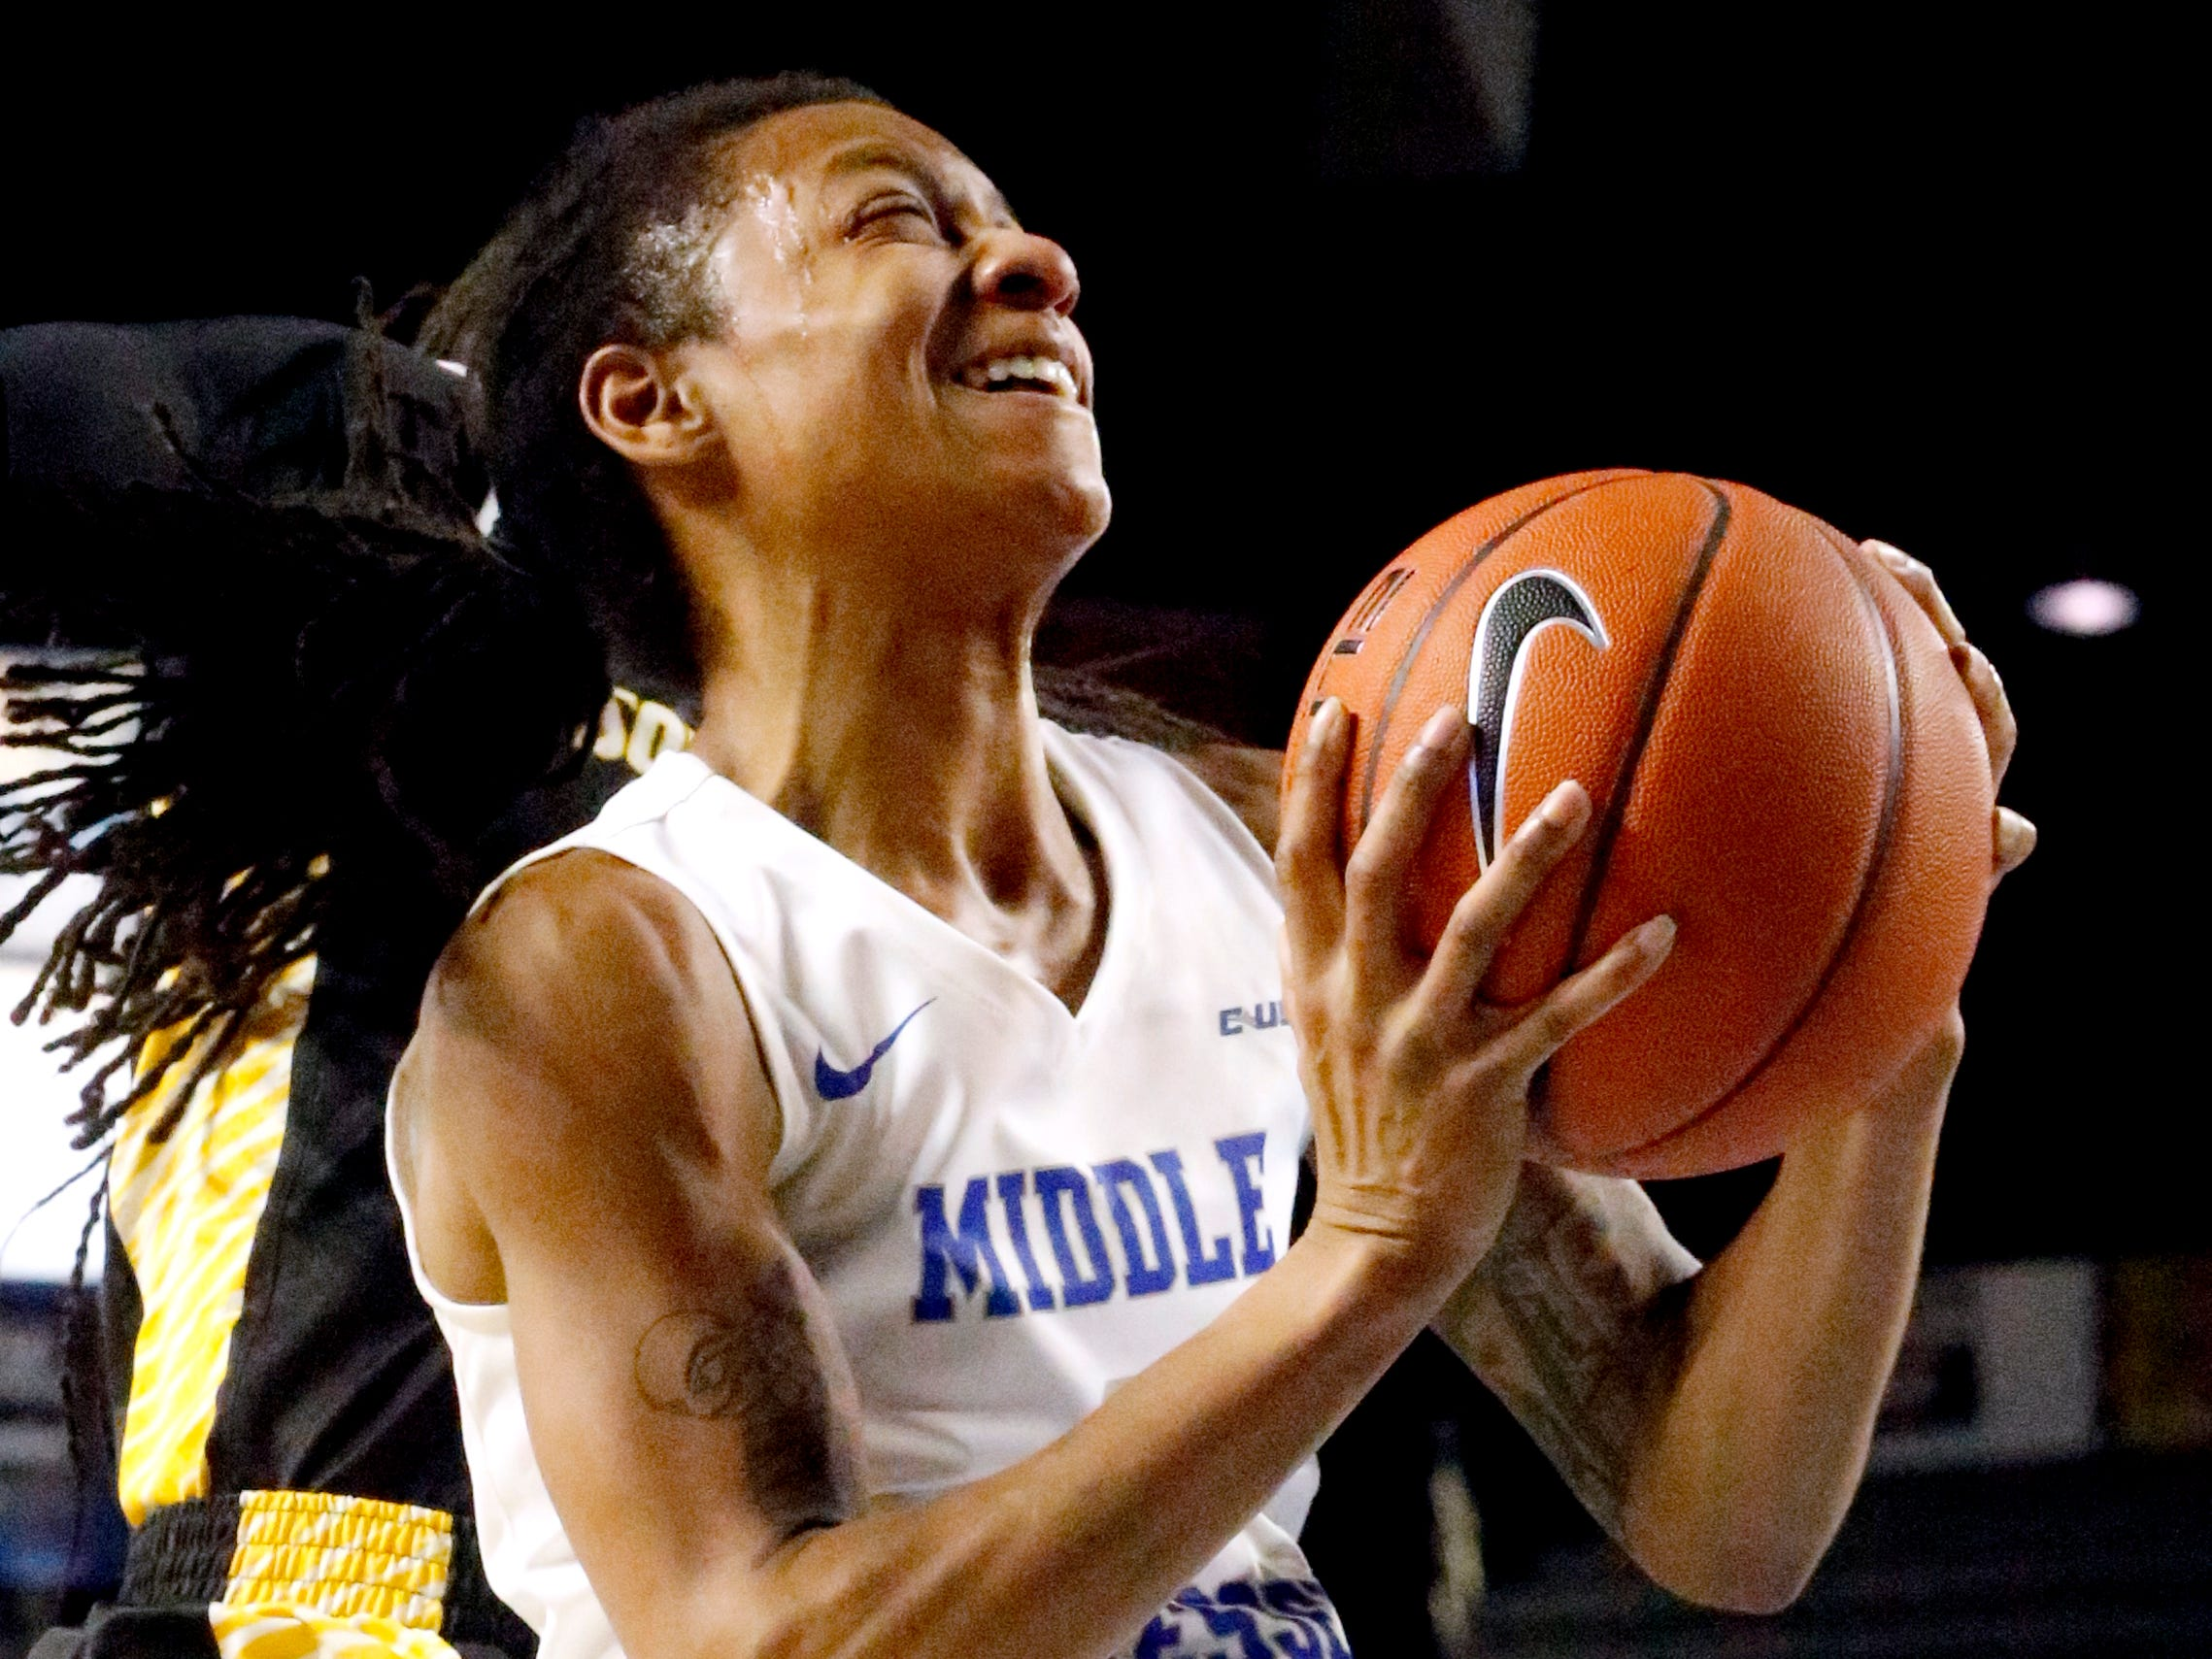 MTSU's guard A'Queen Hayes (1) goes up for a shot during the game against Southern Miss, on Thursday Jan. 10, 2019.